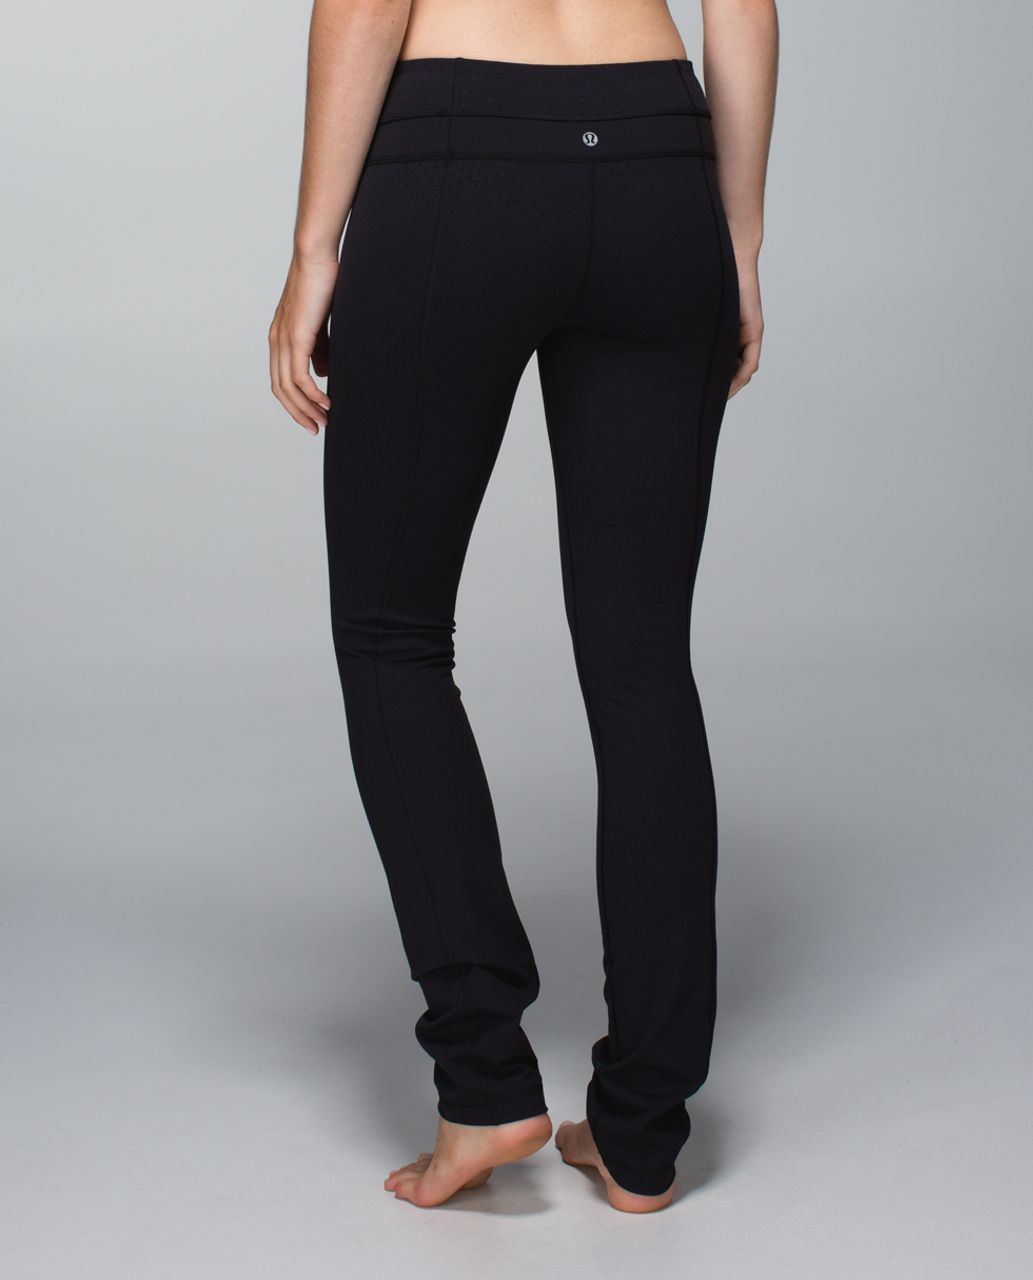 cf845e38c6 Lululemon Skinny Groove Pant *Full-On Luon - Shine Dot Black / Black - lulu  fanatics